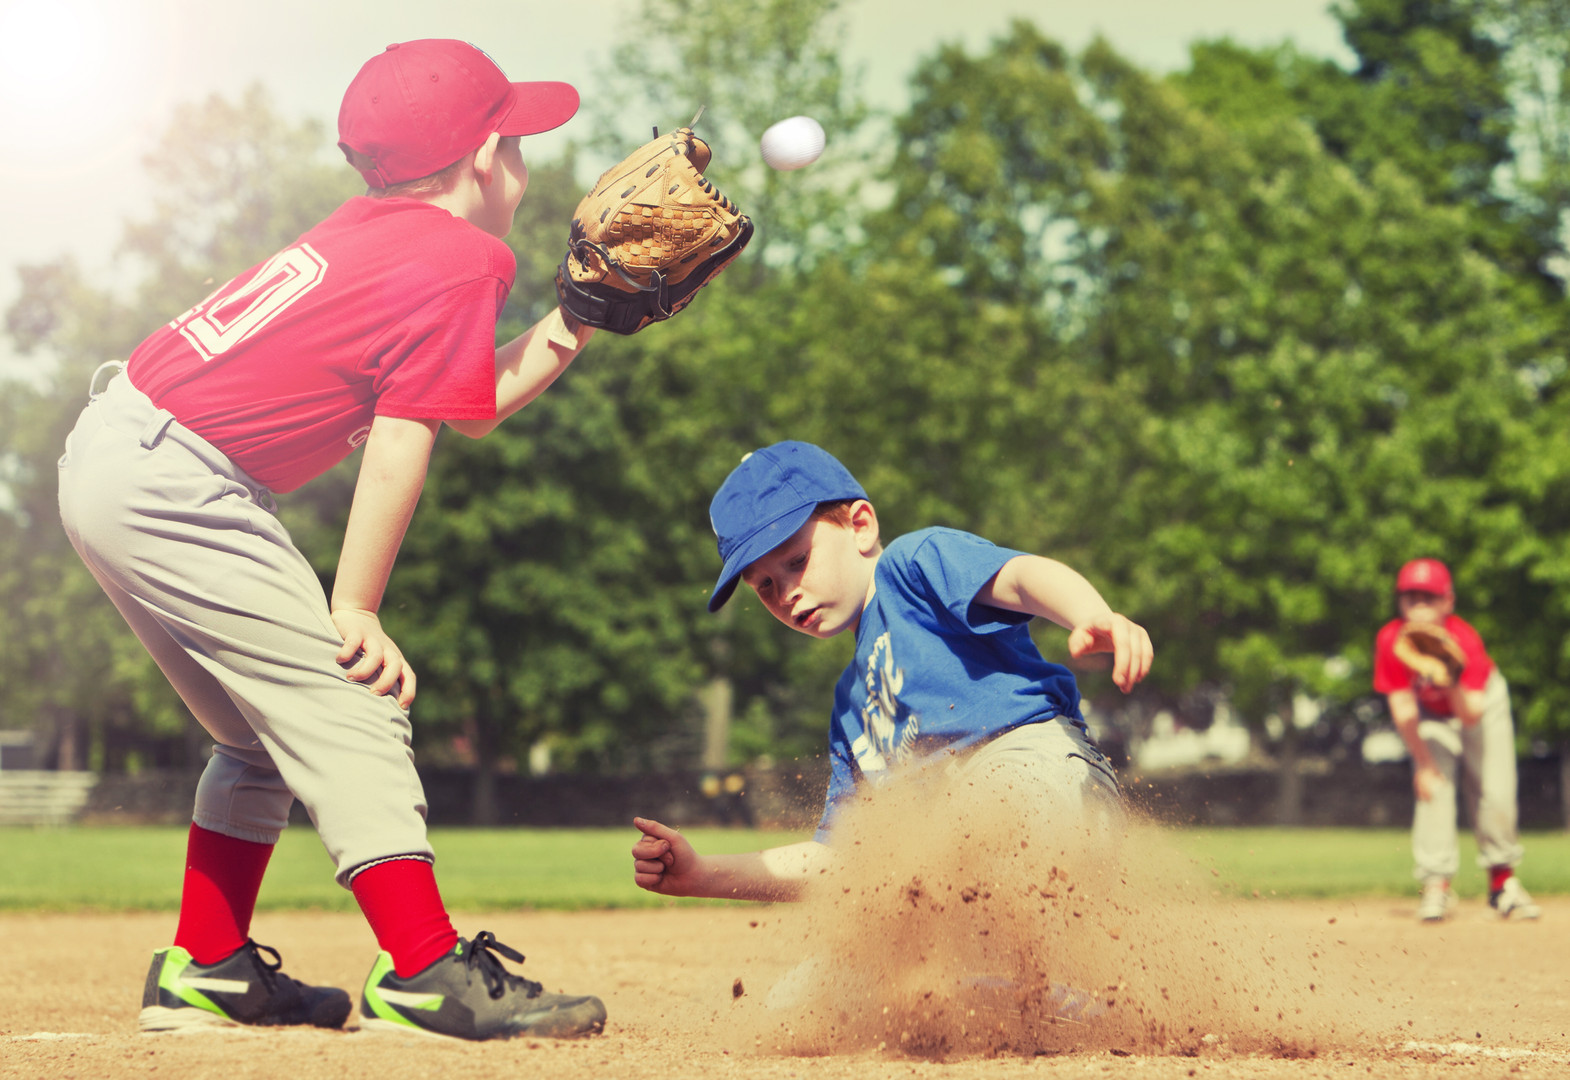 Boy sliding into base during a baseball